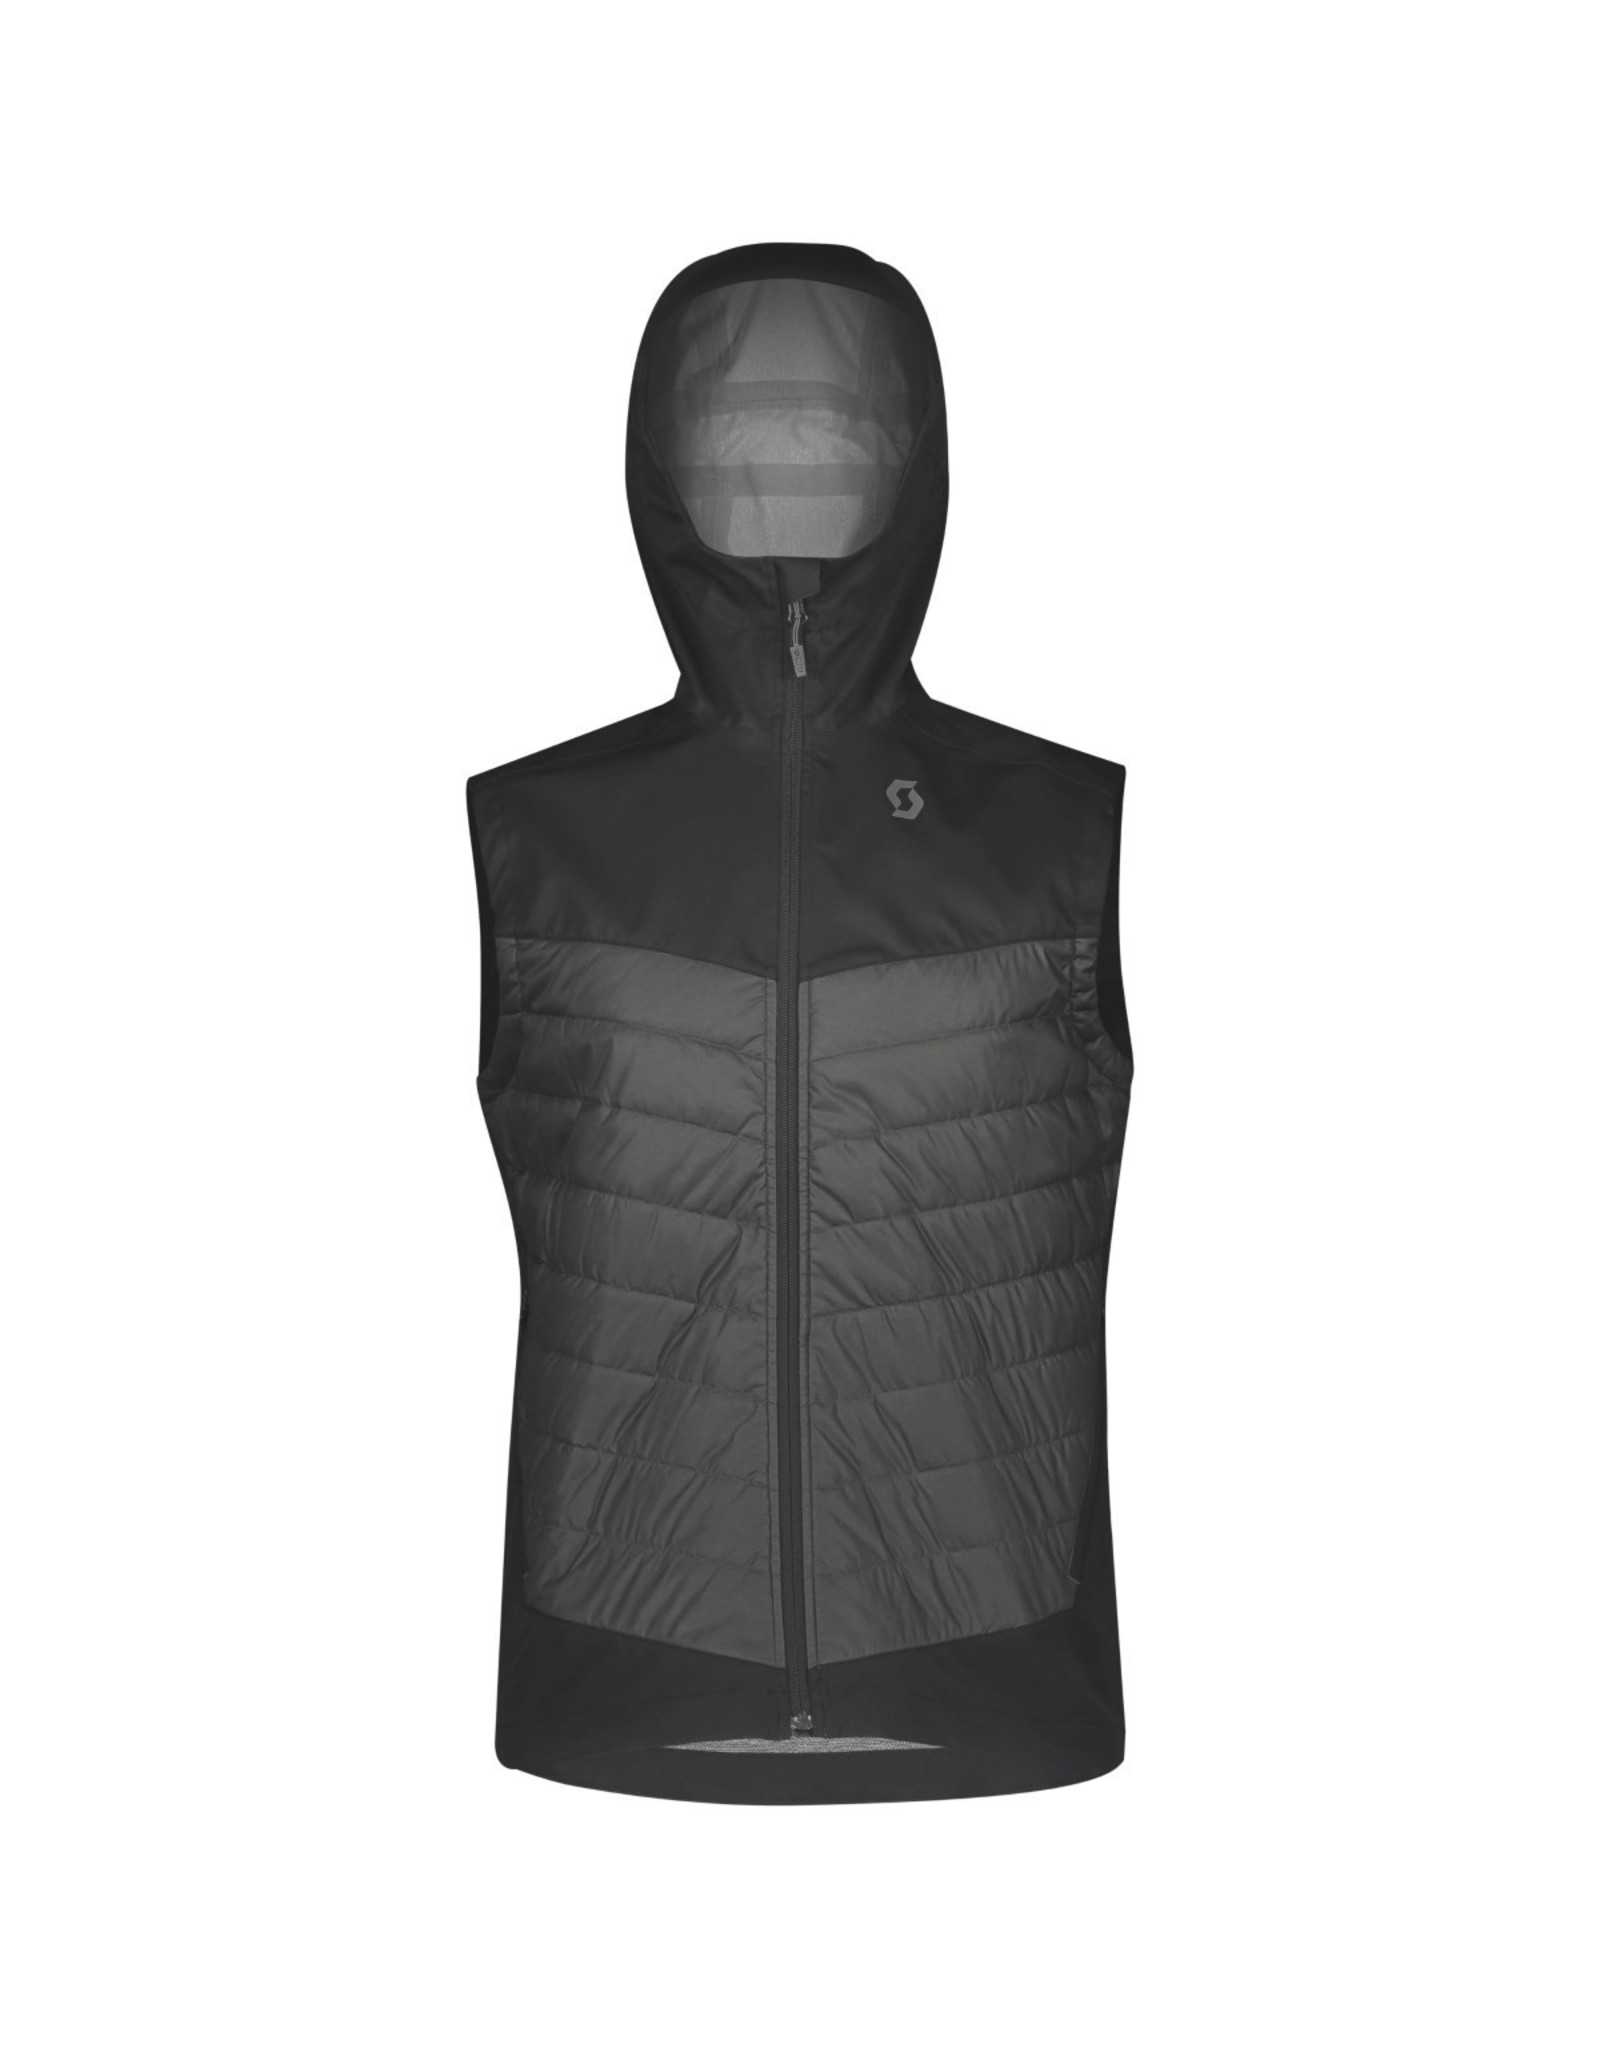 Scott Scott Explorair Ascent Vest - Men